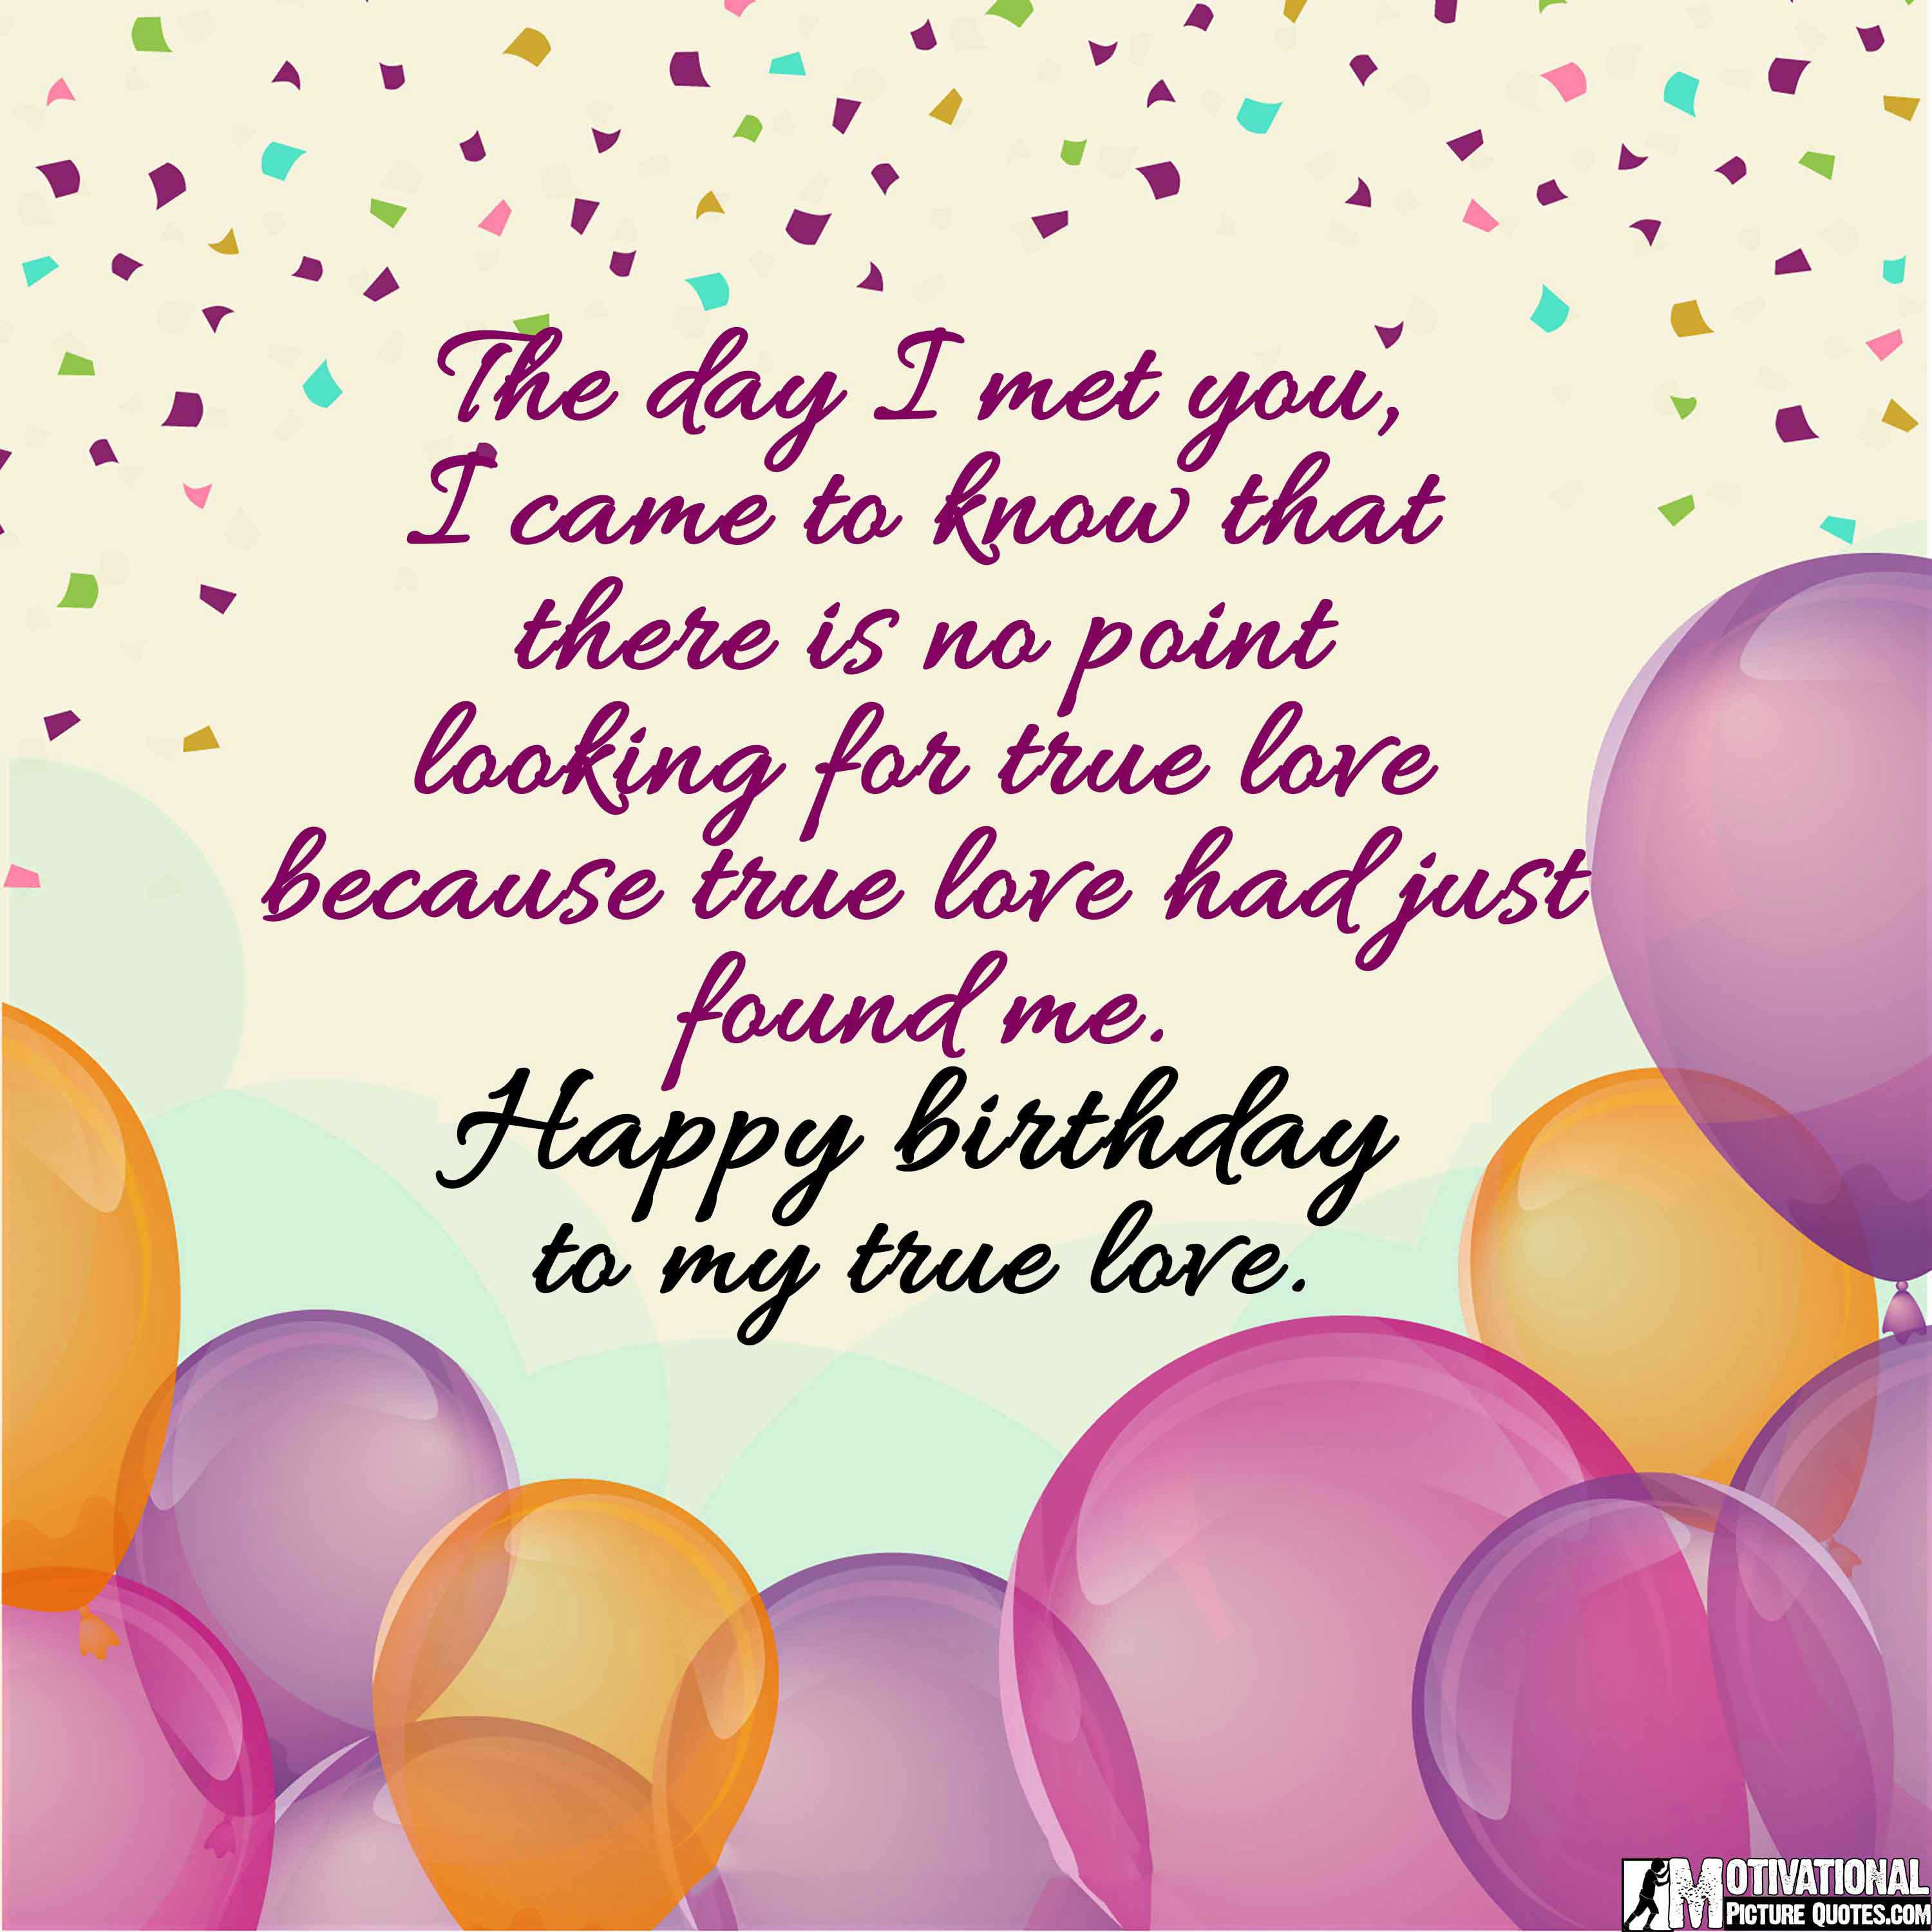 Happy Birthday Quotes For Her  35 Inspirational Birthday Quotes